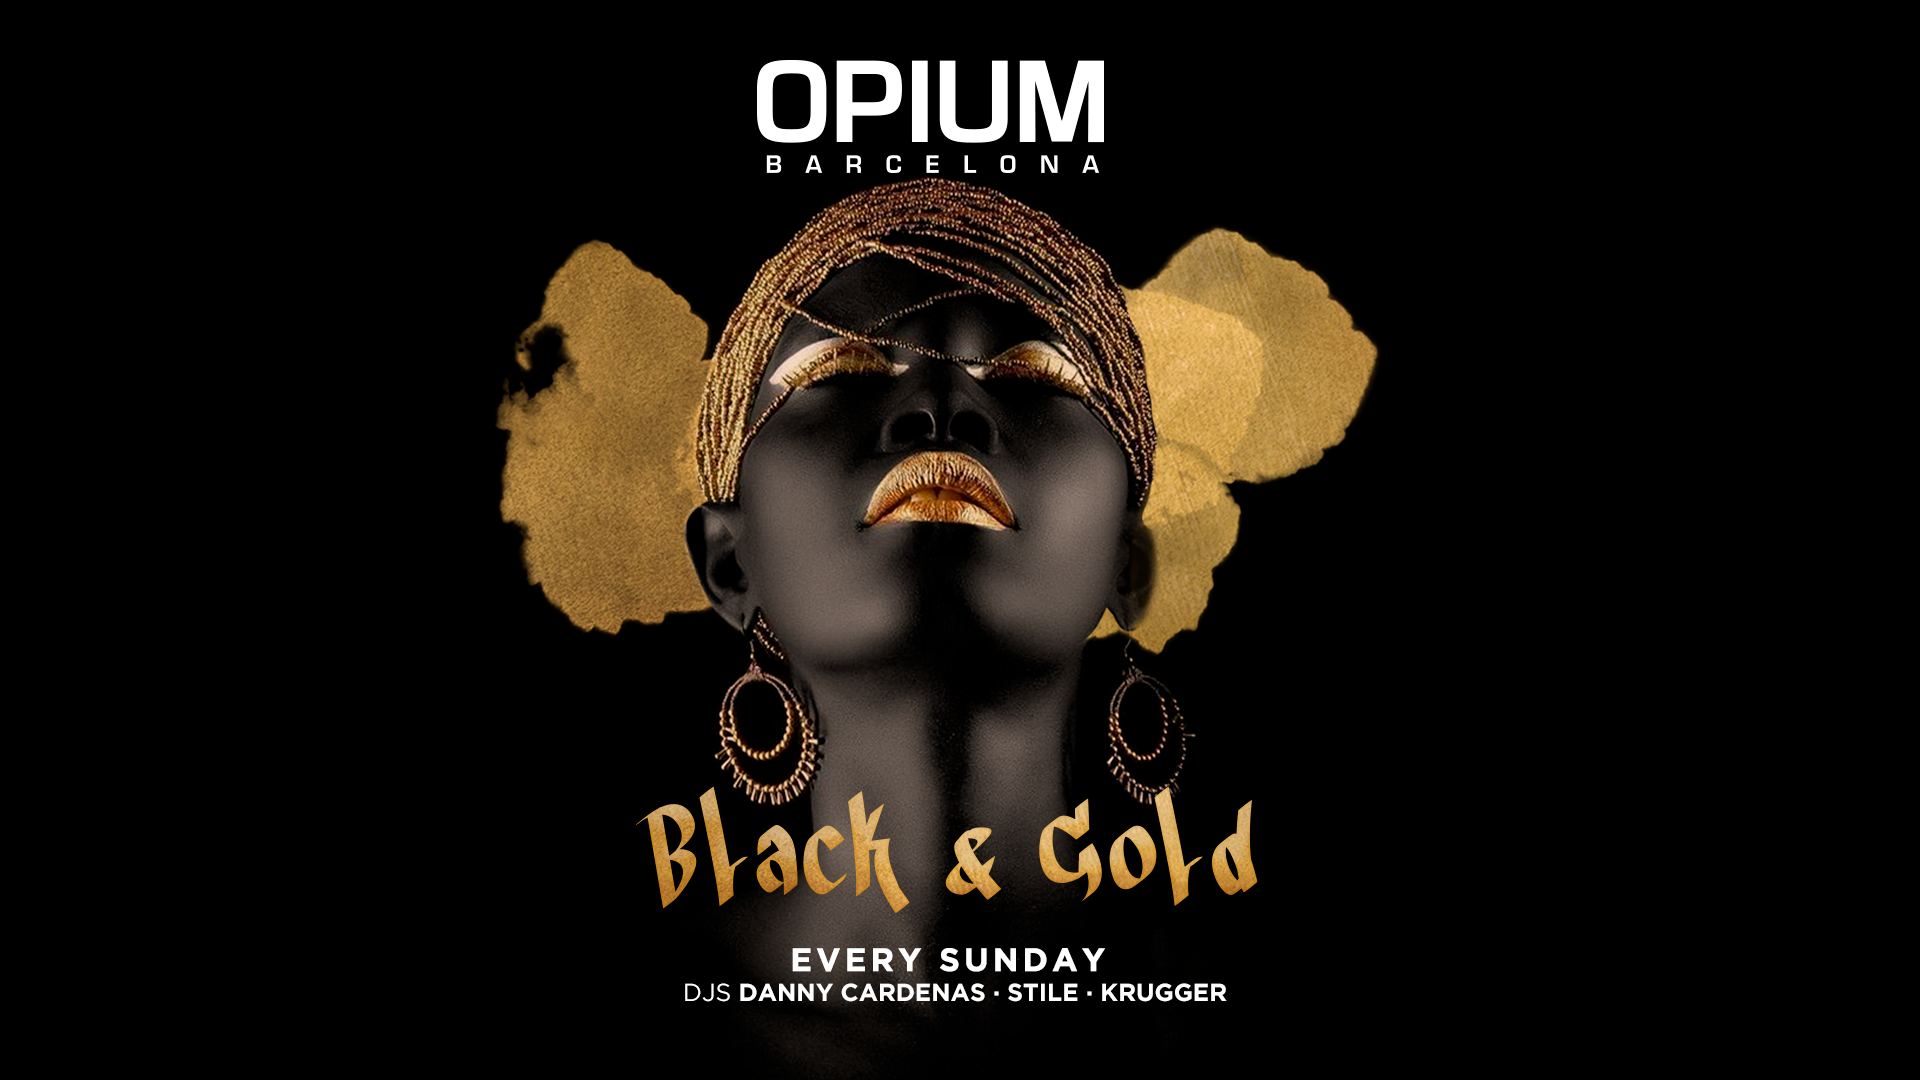 DOMINGO: TURN UP  - Club Opium Barcelona